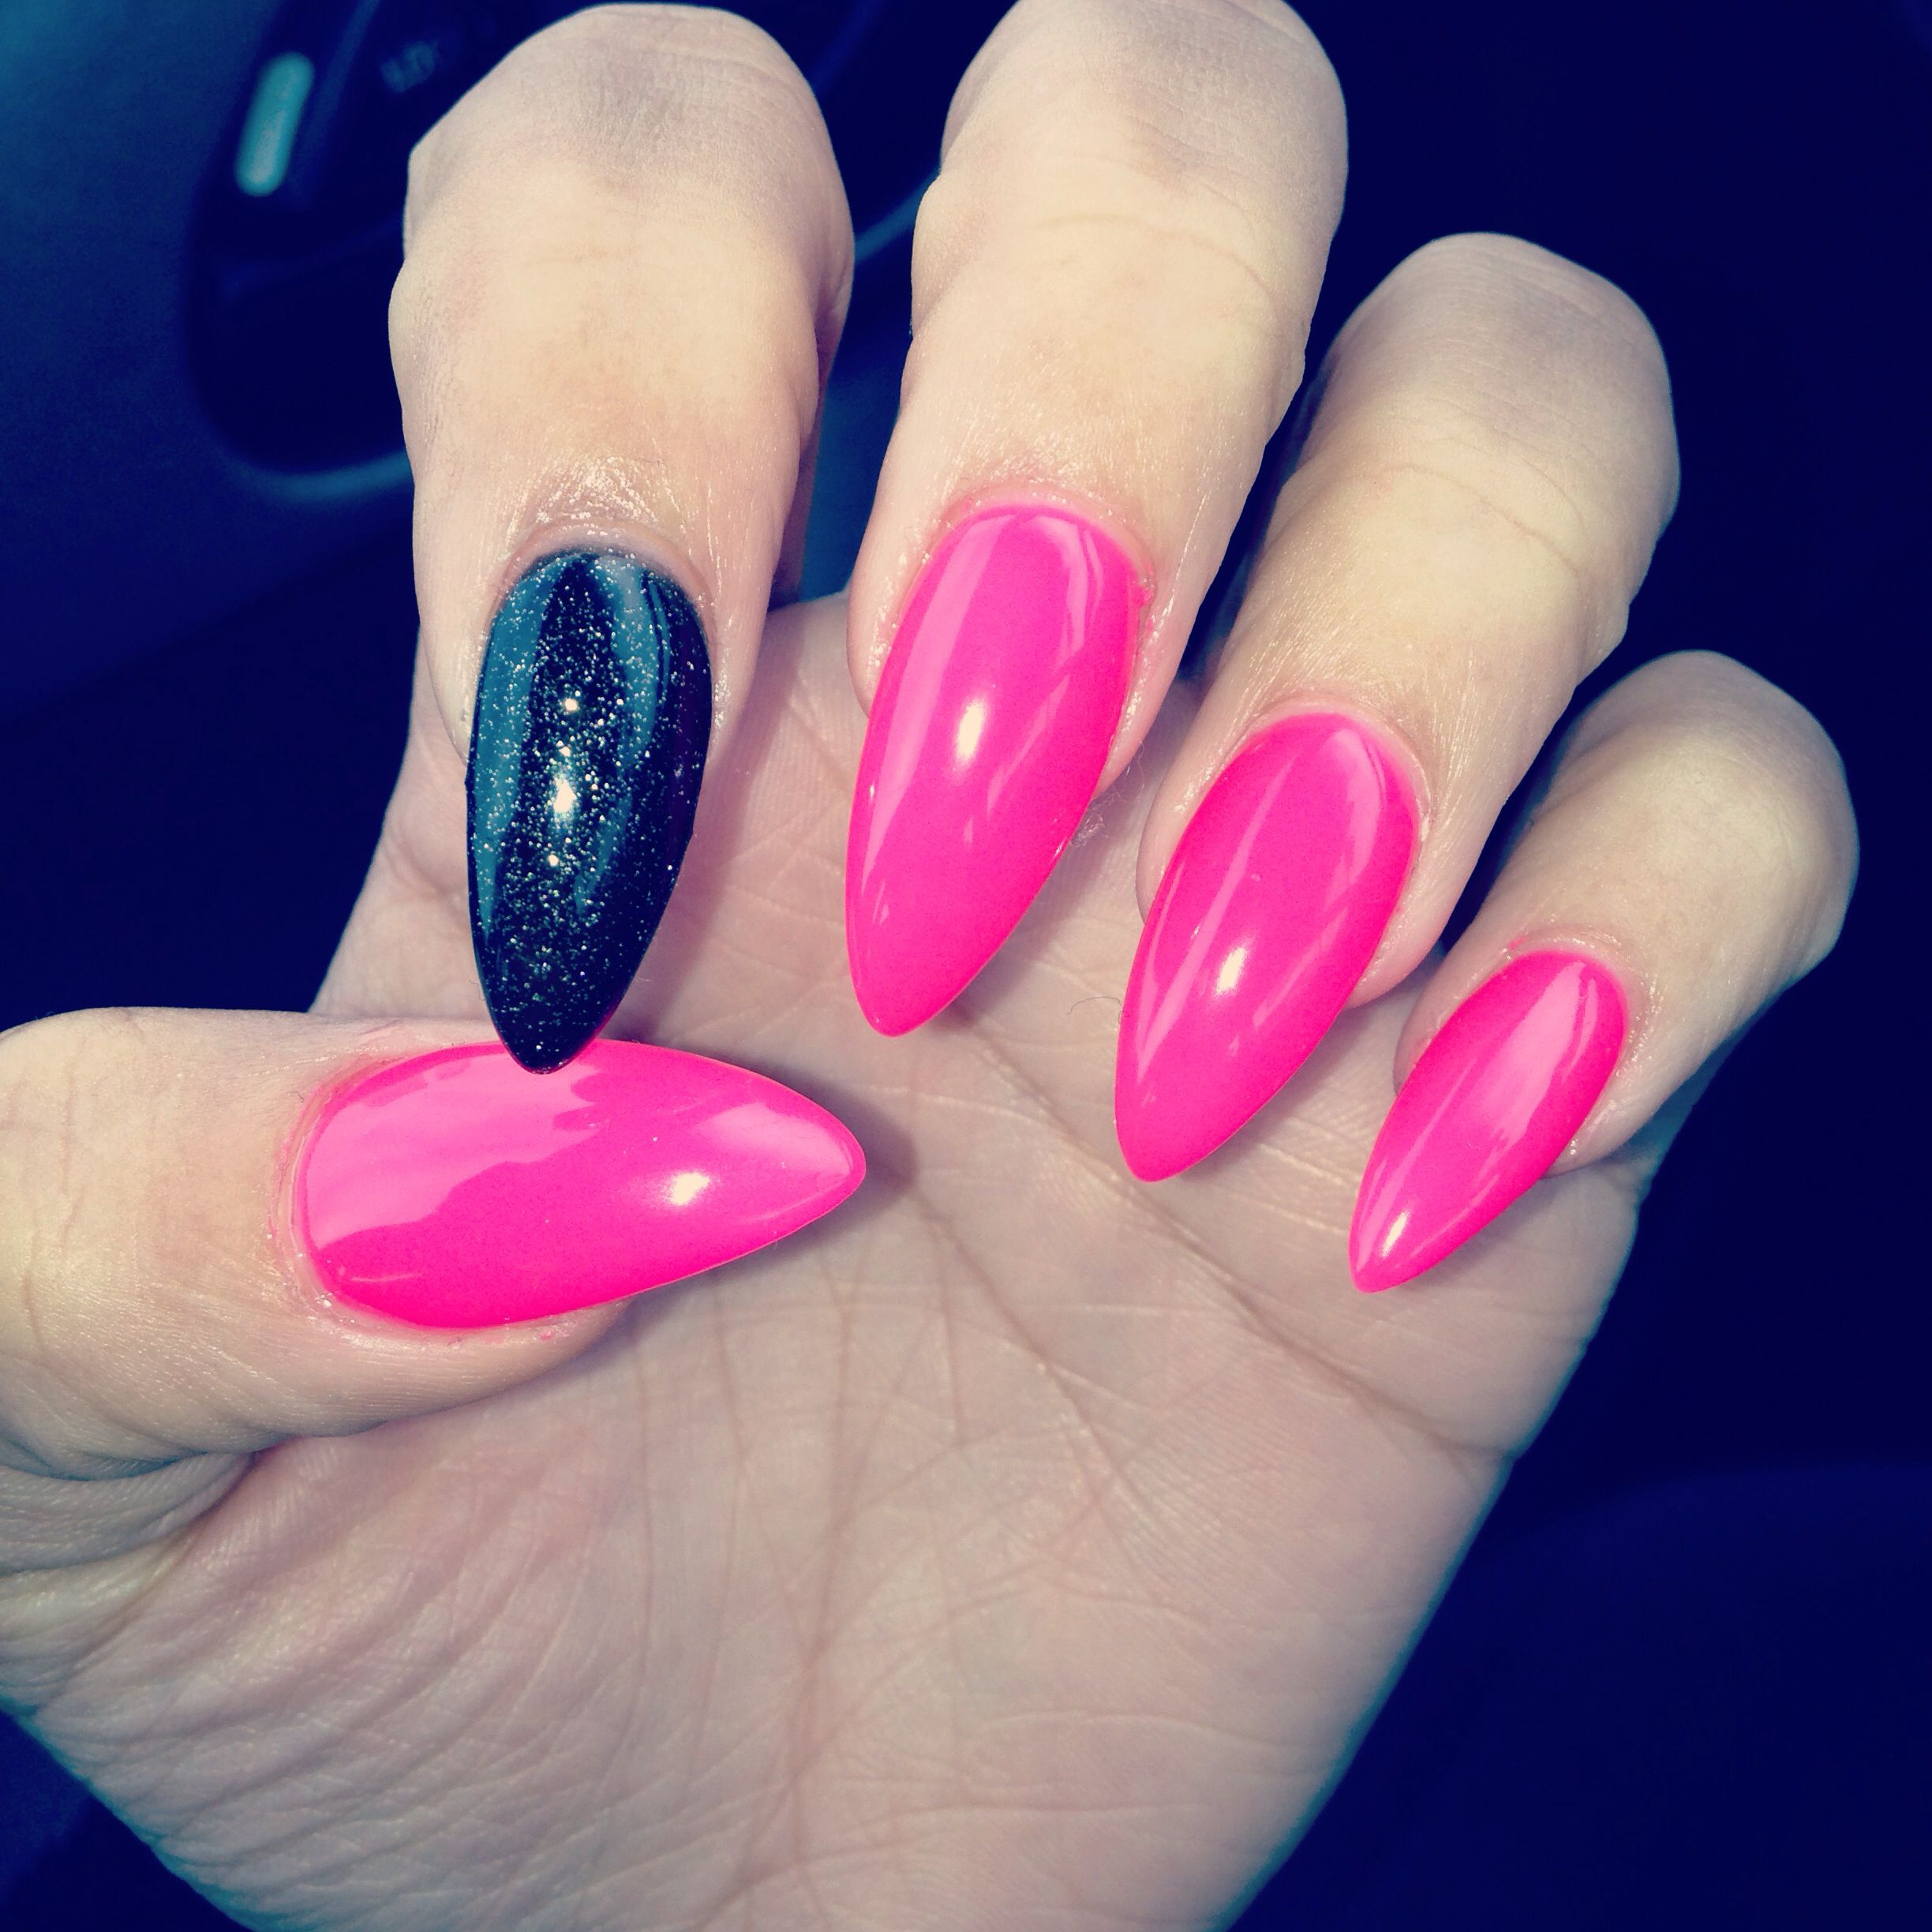 Pink and black stiletto nails | Simple Nails | Pinterest